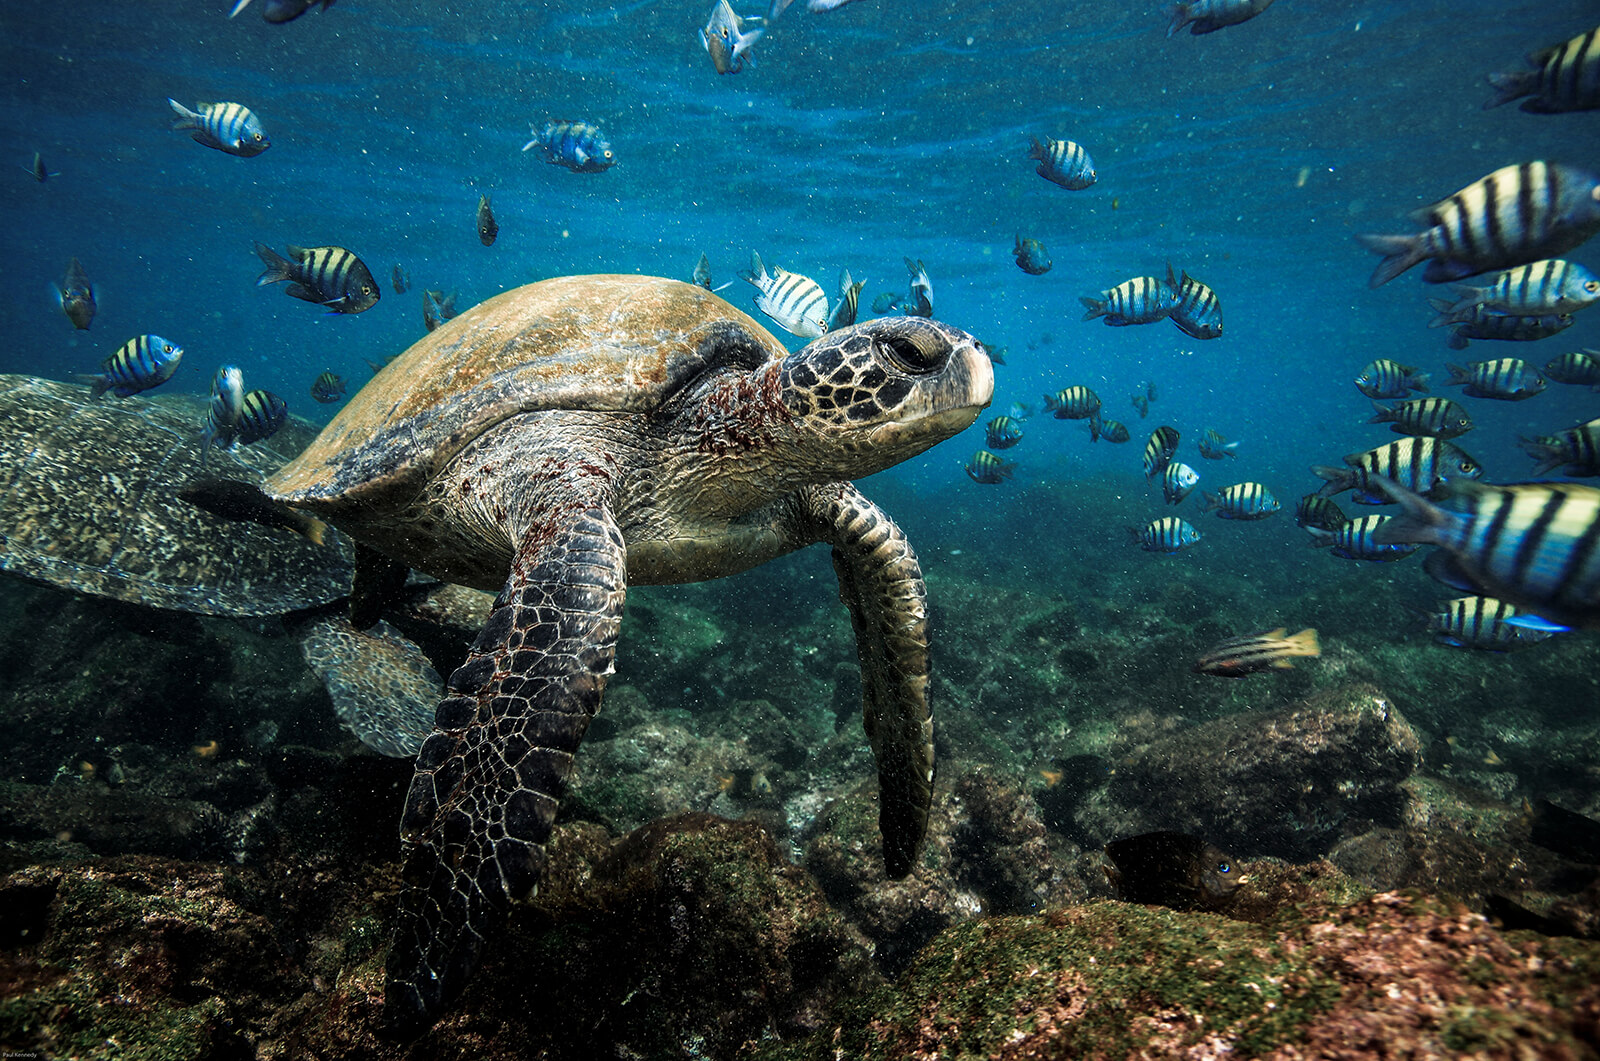 Small Ship Voyages Book Luxury Cruises with Silversea Cruises - experience wildlife